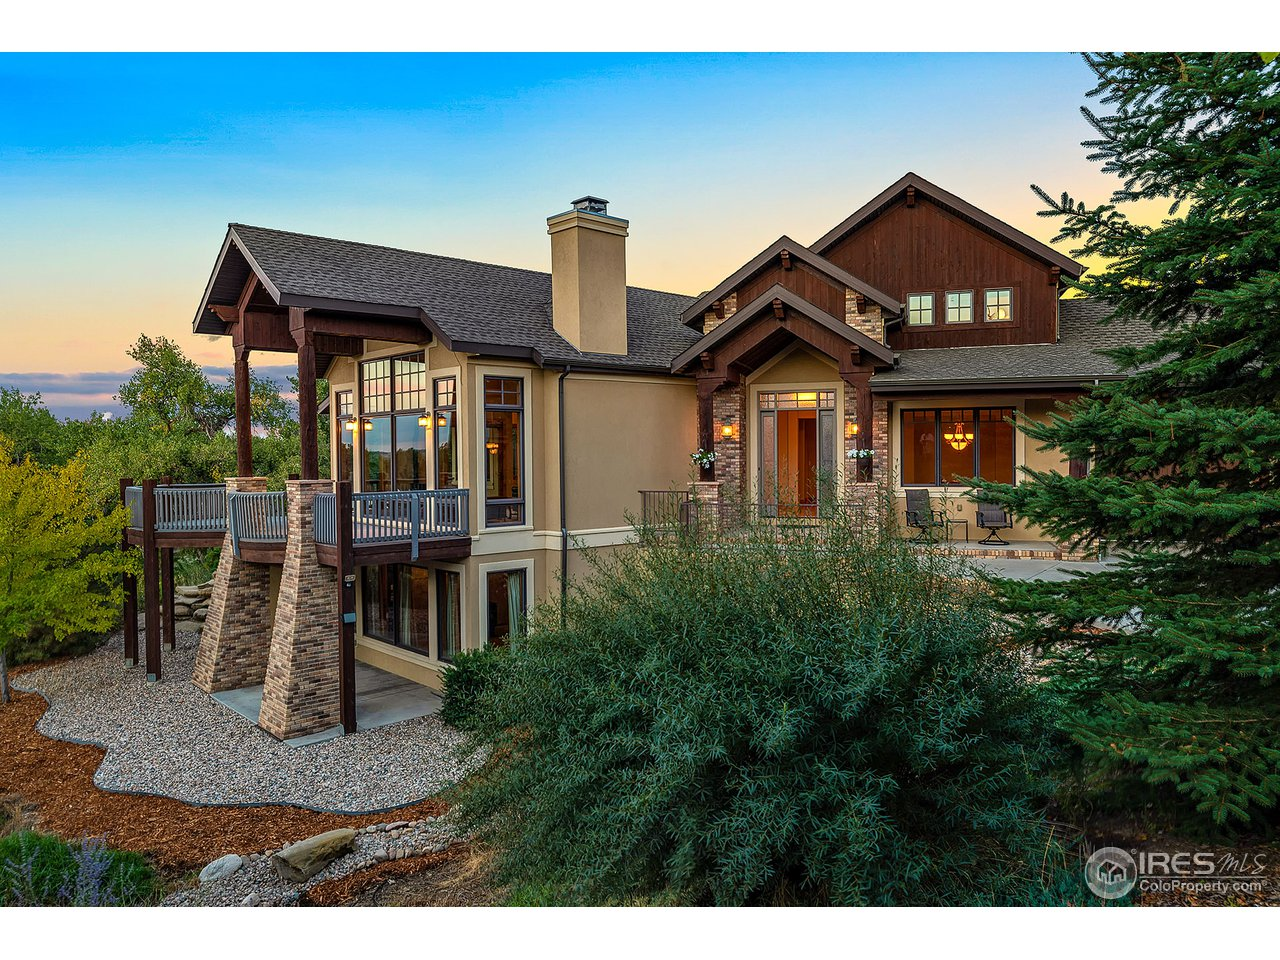 Perfect Location walking distance to top-rated schools. Gleaming solid hickory wood floors, quiet street, spectacular custom kitchen and cherry cabinets, granite counter tops, stainless appliances, and tons of storage. Beautiful decks with river and lake views, access to the Poudre Trail. Walkout basement, designer paint. There is room for everyone in this custom home.